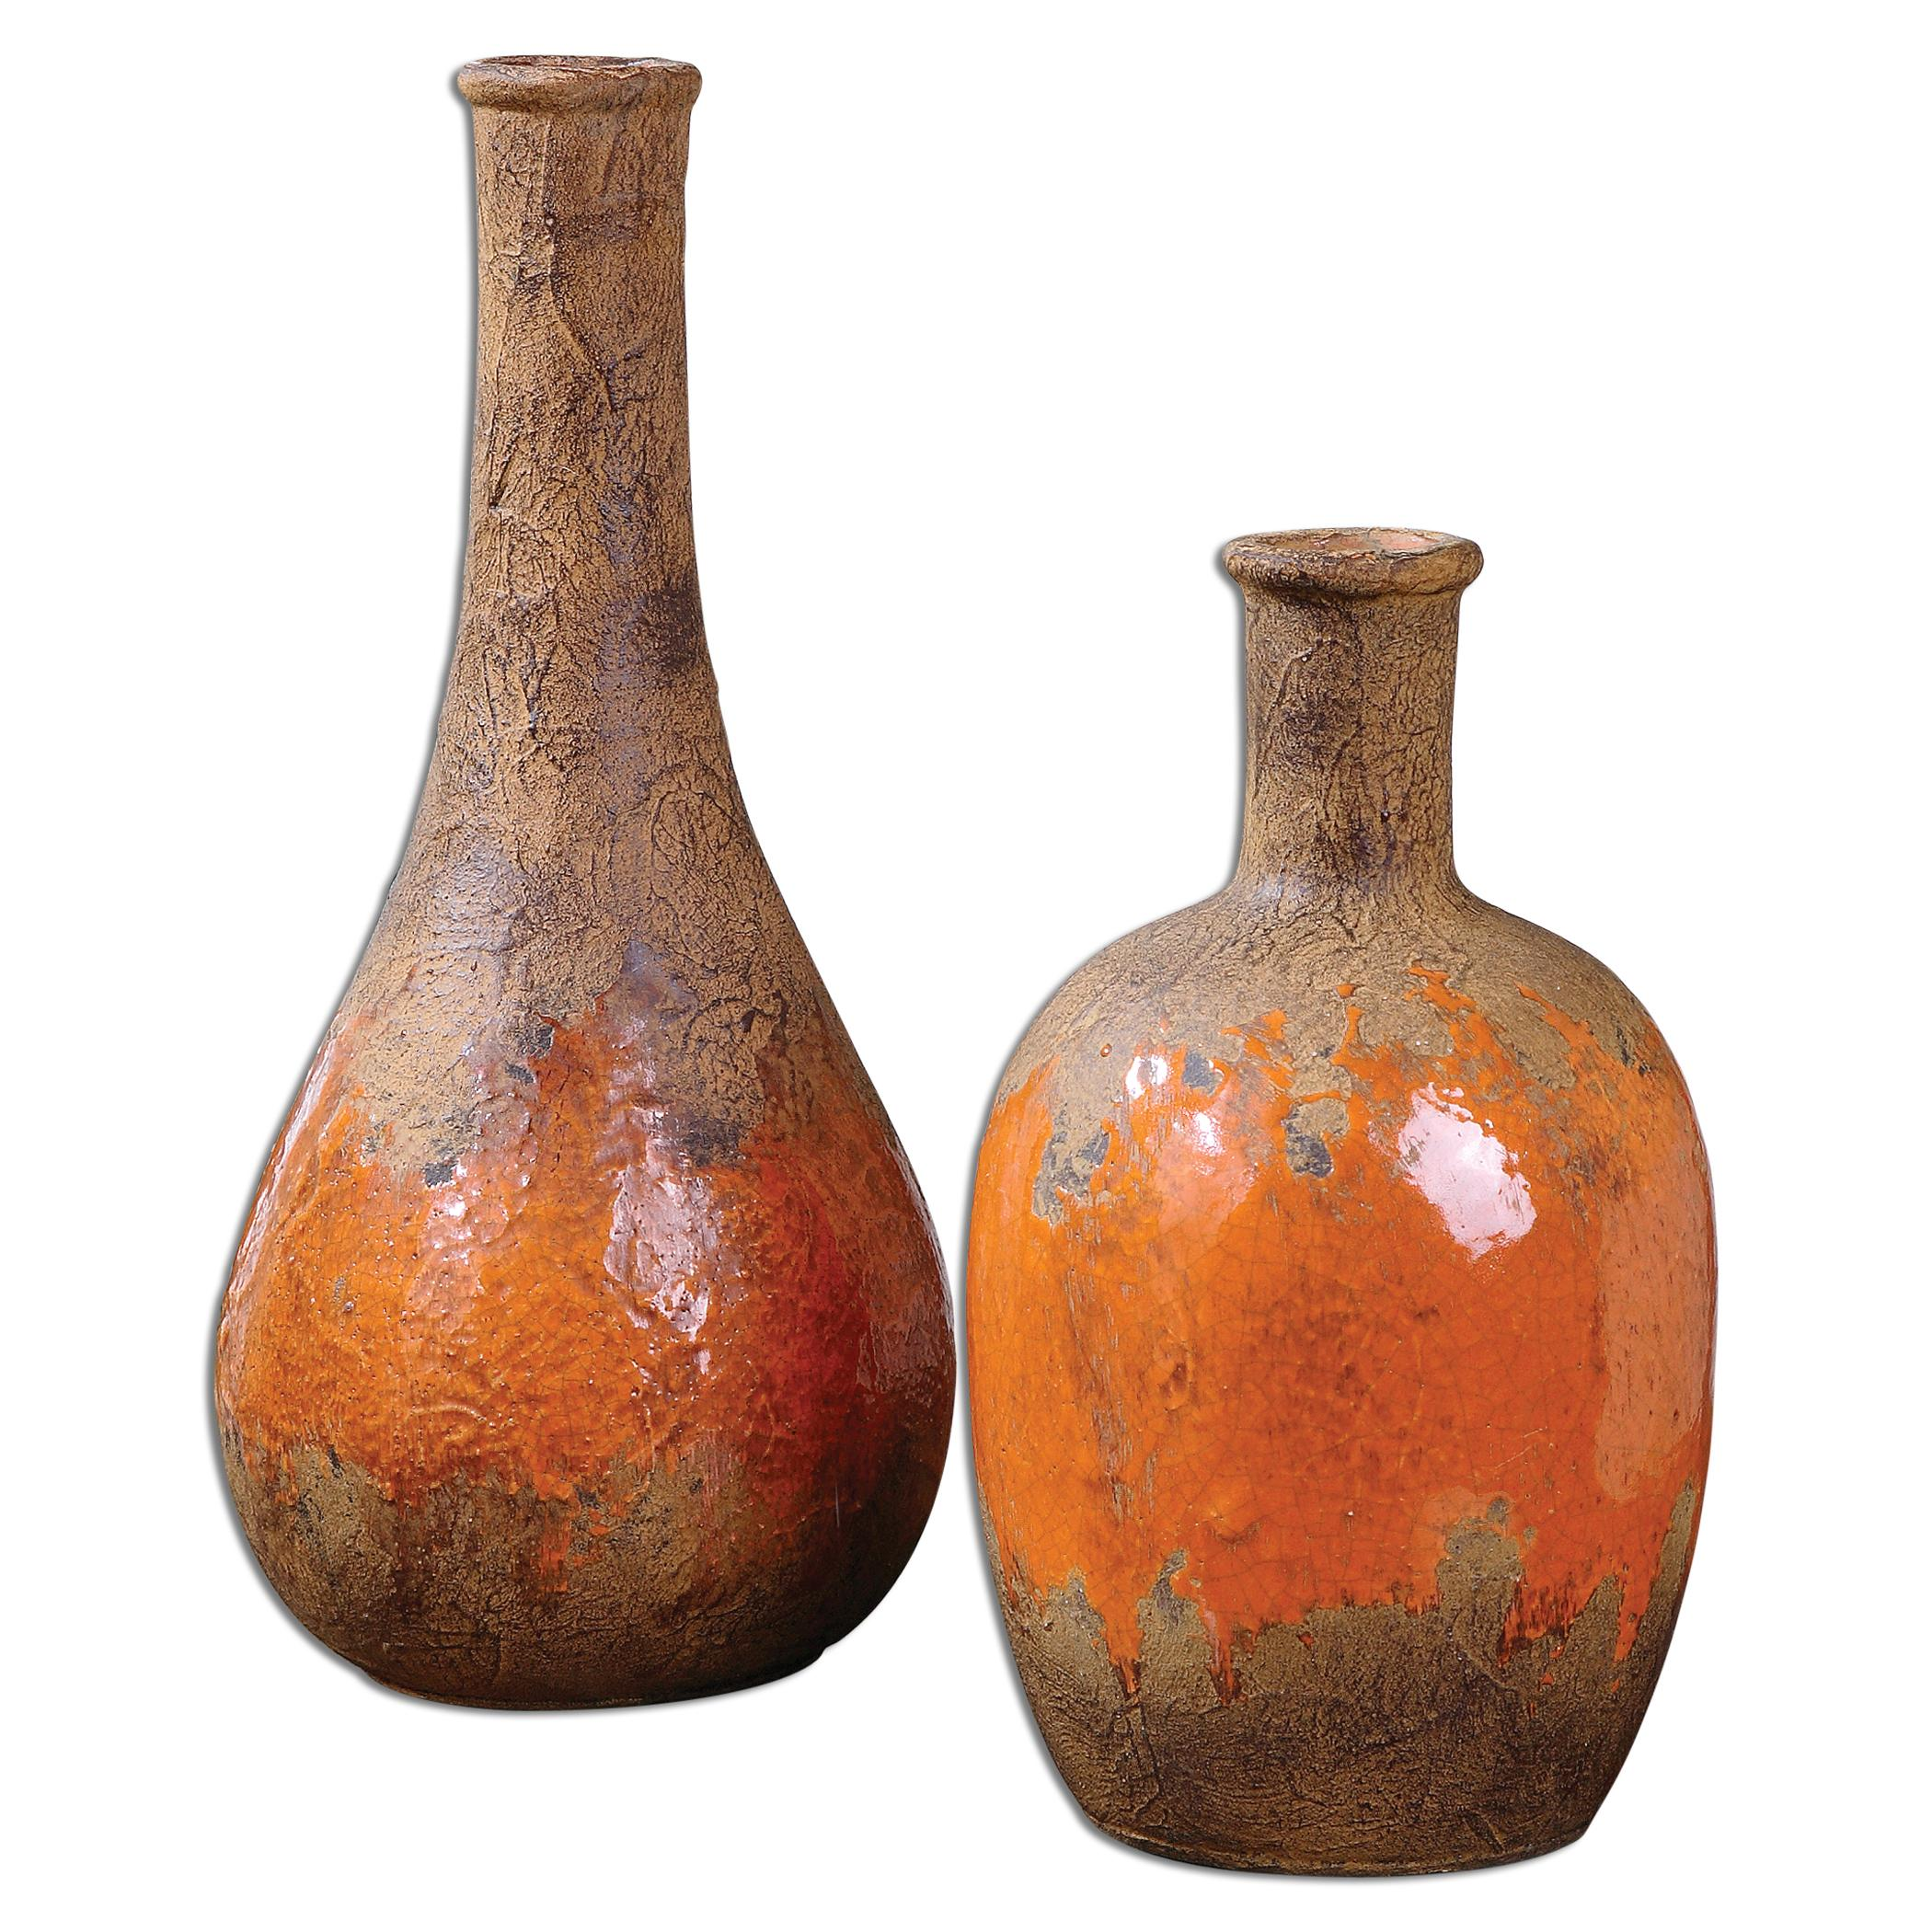 Uttermost Accessories Kadam Ceramic Vases, Set of  2 - Item Number: 19825